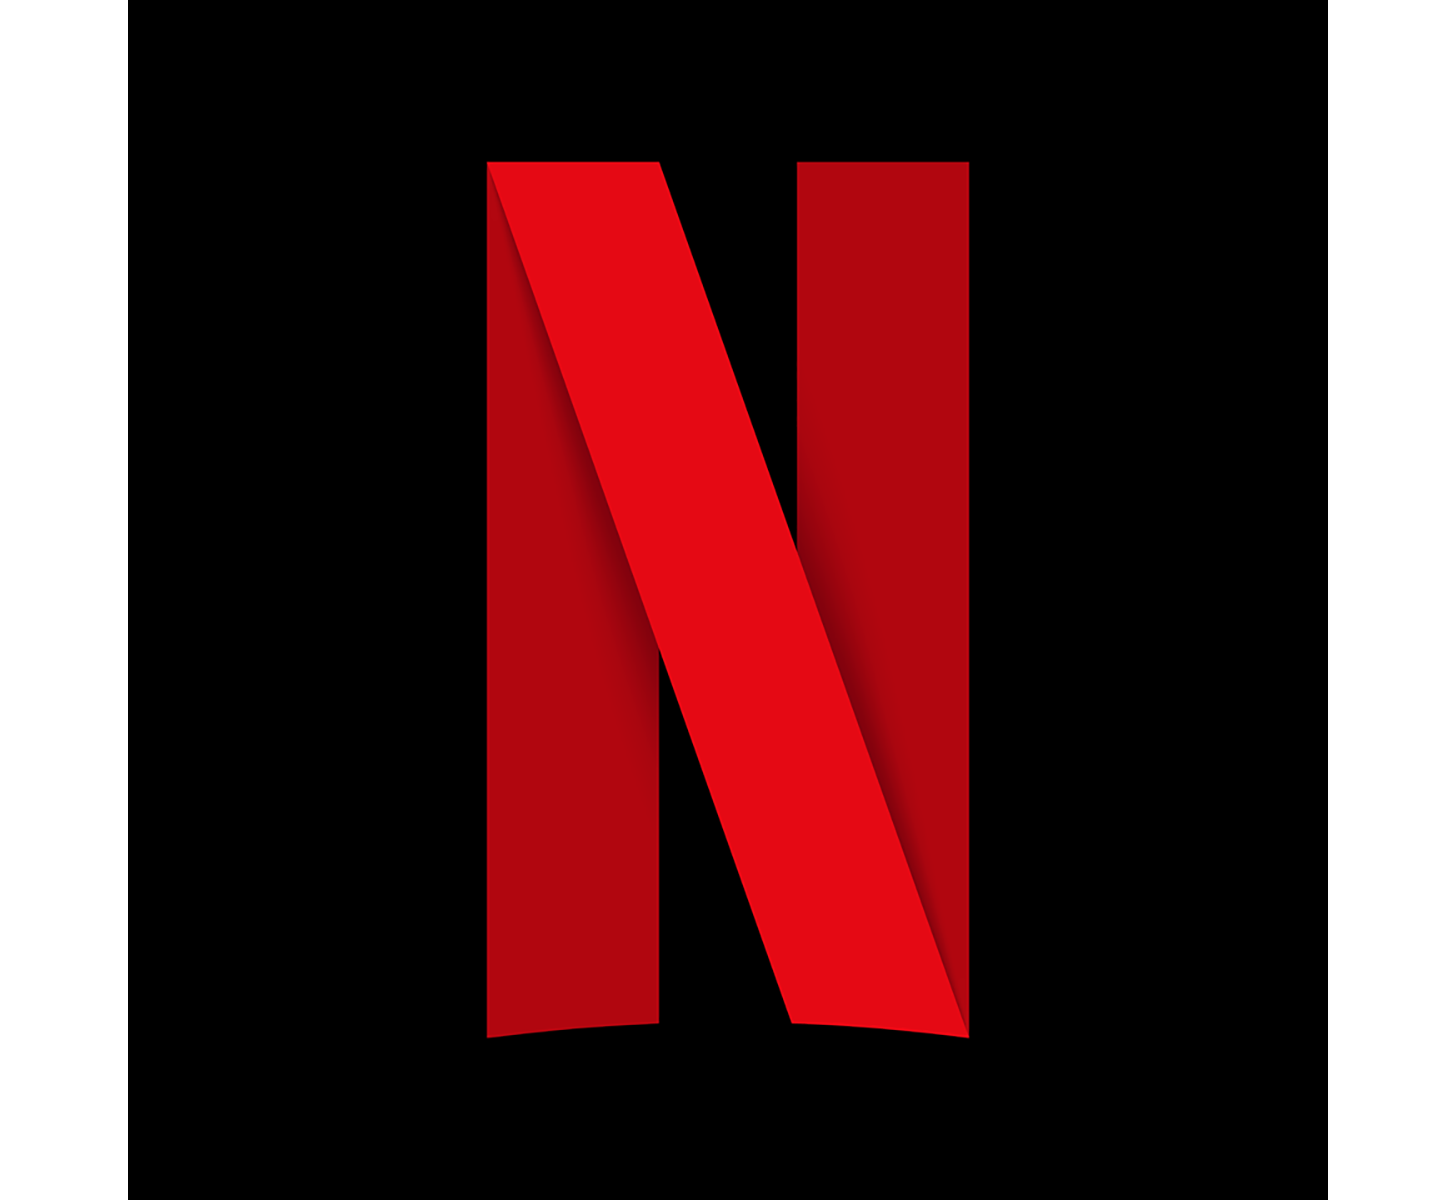 netflix inc nasdaqnflx launches n icon for social media branding market exclusive